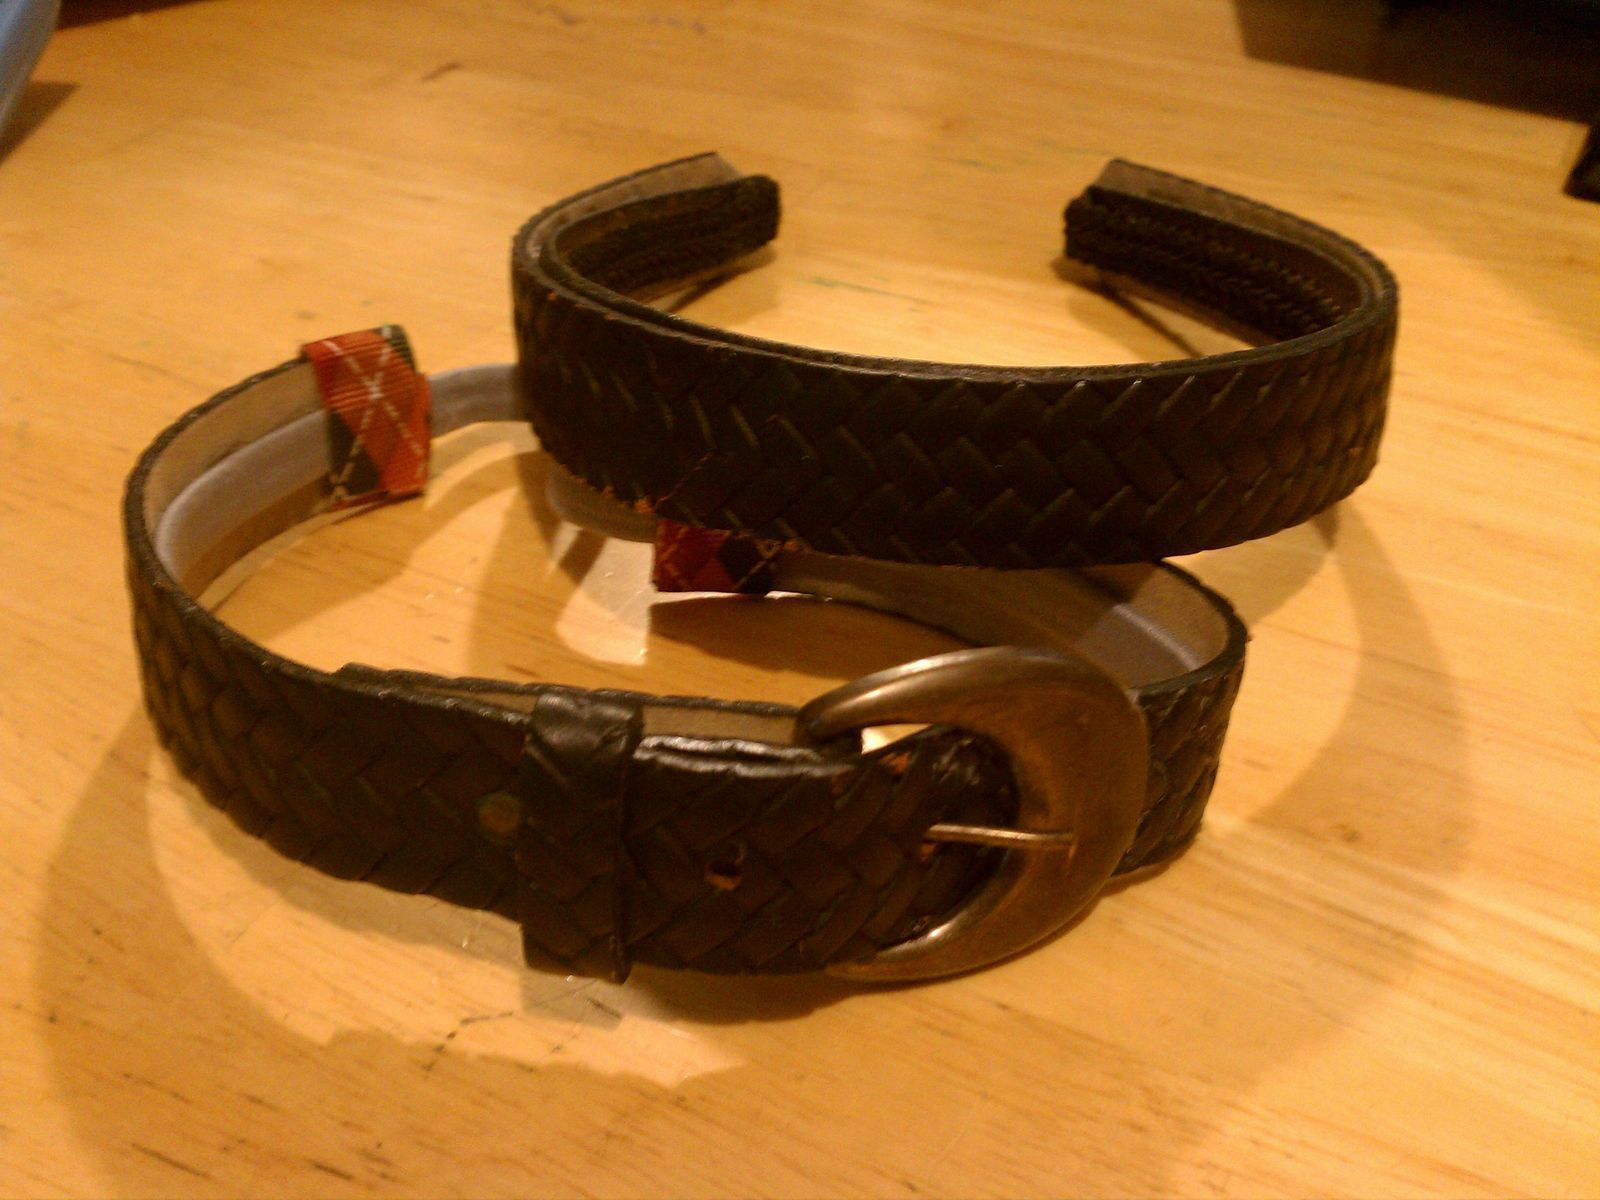 Vintage Belt Headband · How To Make A Recycled Headband ... Quailman Belt Headband